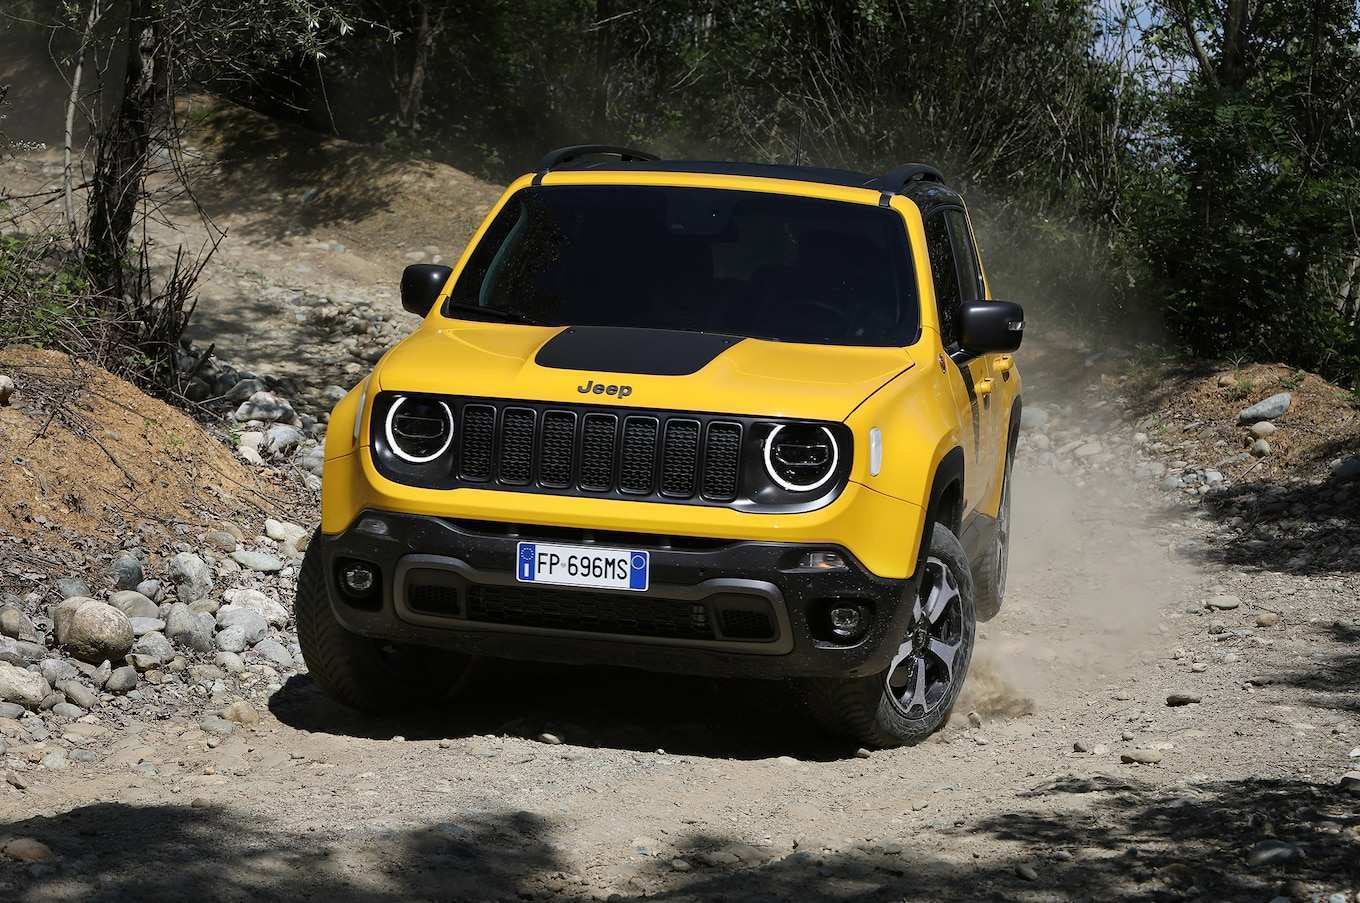 79 New 2019 Jeep Images Picture with 2019 Jeep Images